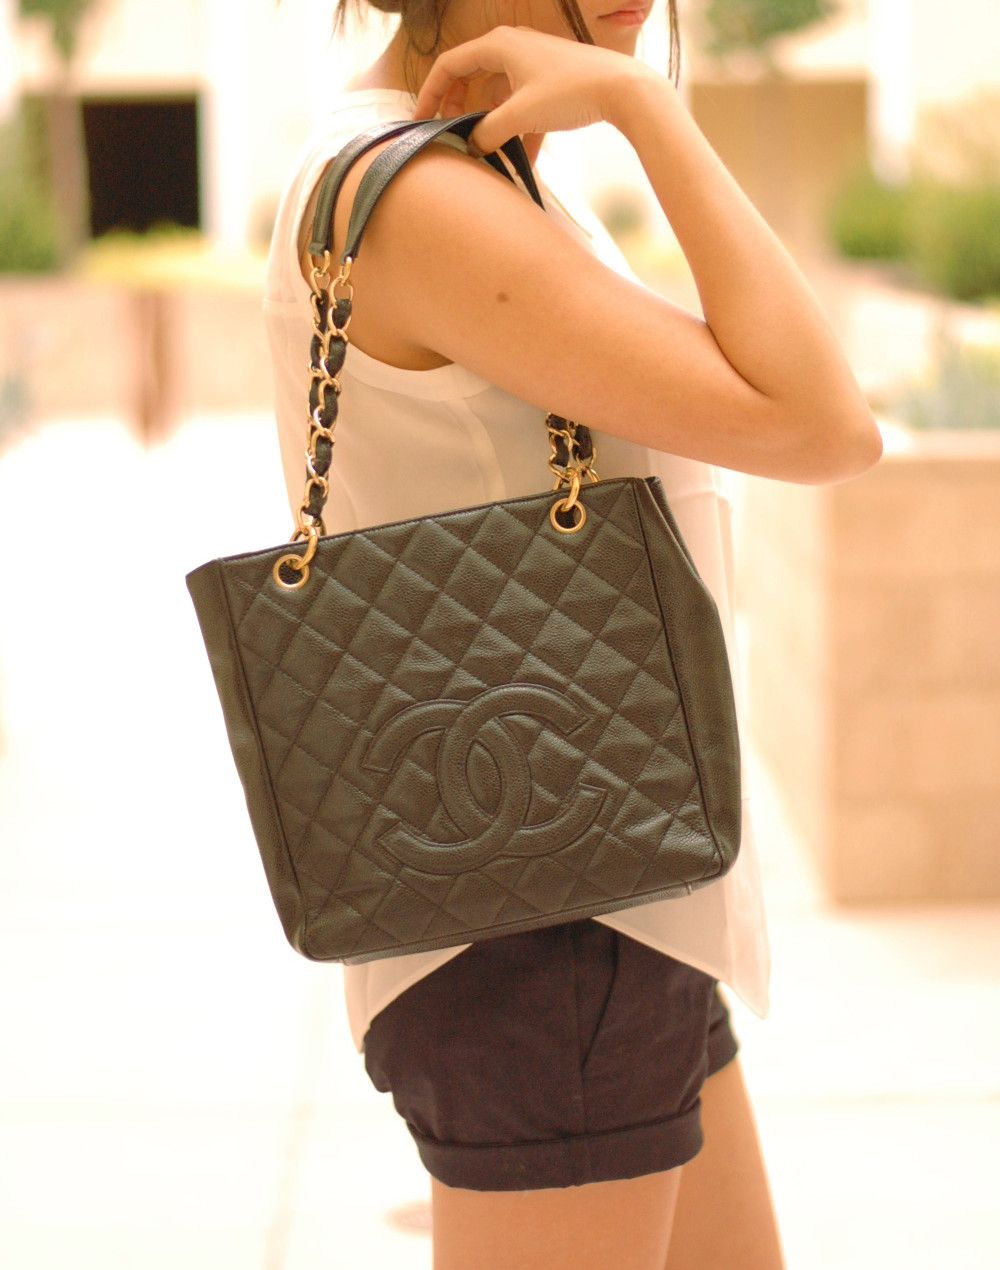 15bd2ea8212b Gorgeous Bag Chanel PST Petite Shopping Tote Shoulder Bag!